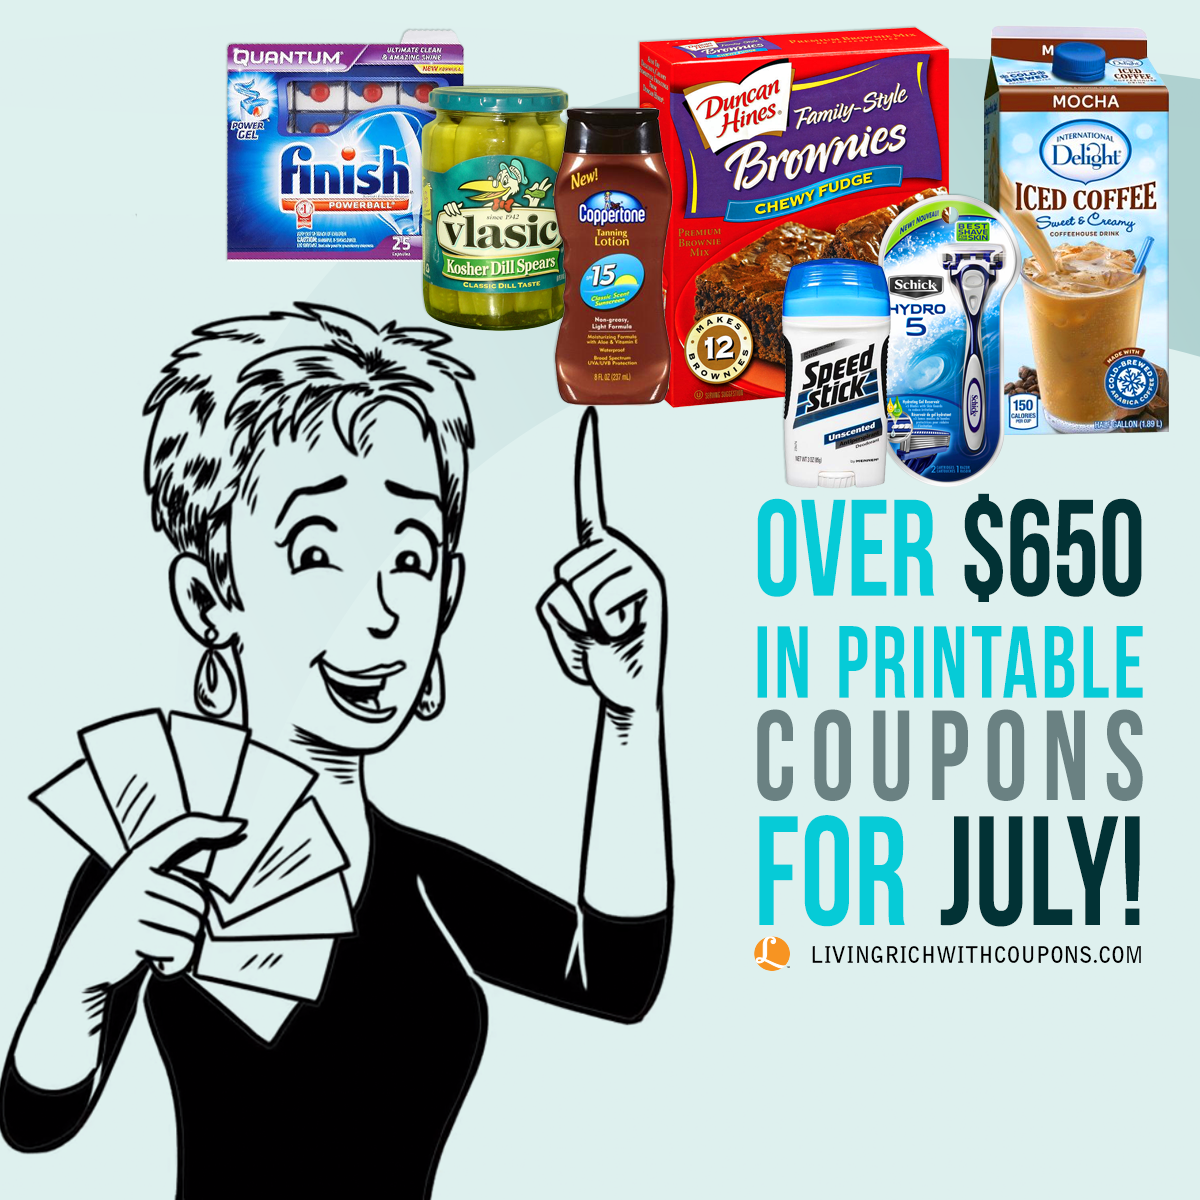 Printable Coupons for July - $650 Available to Print!Living Rich ...